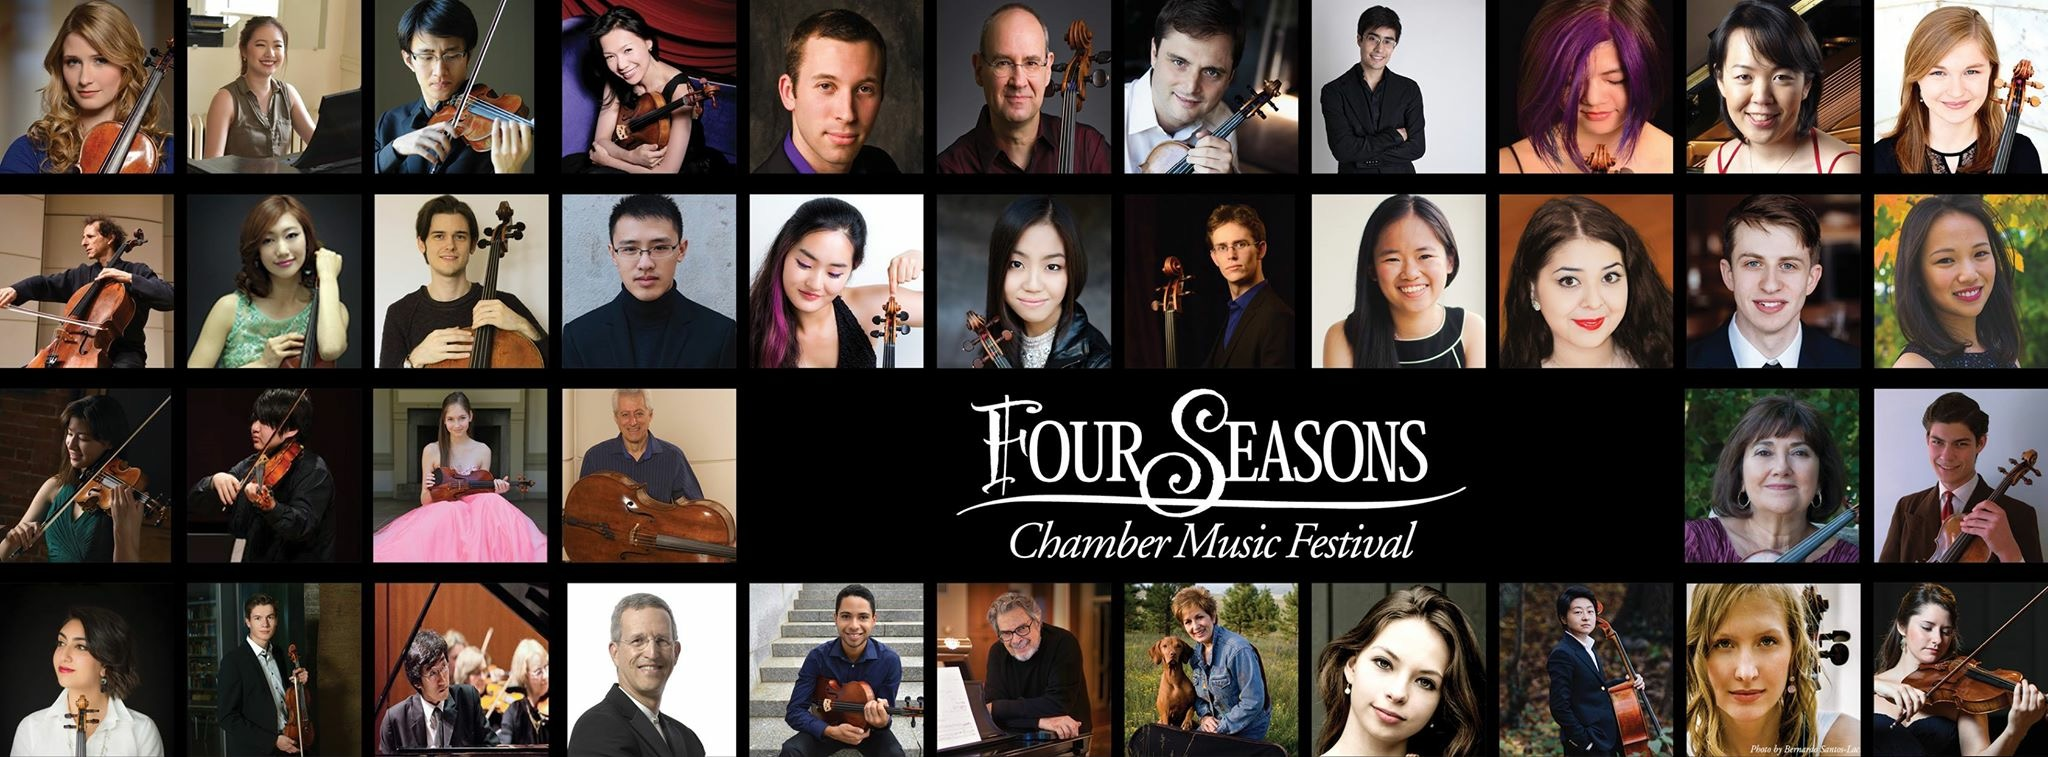 Four Seasons Chamber Music